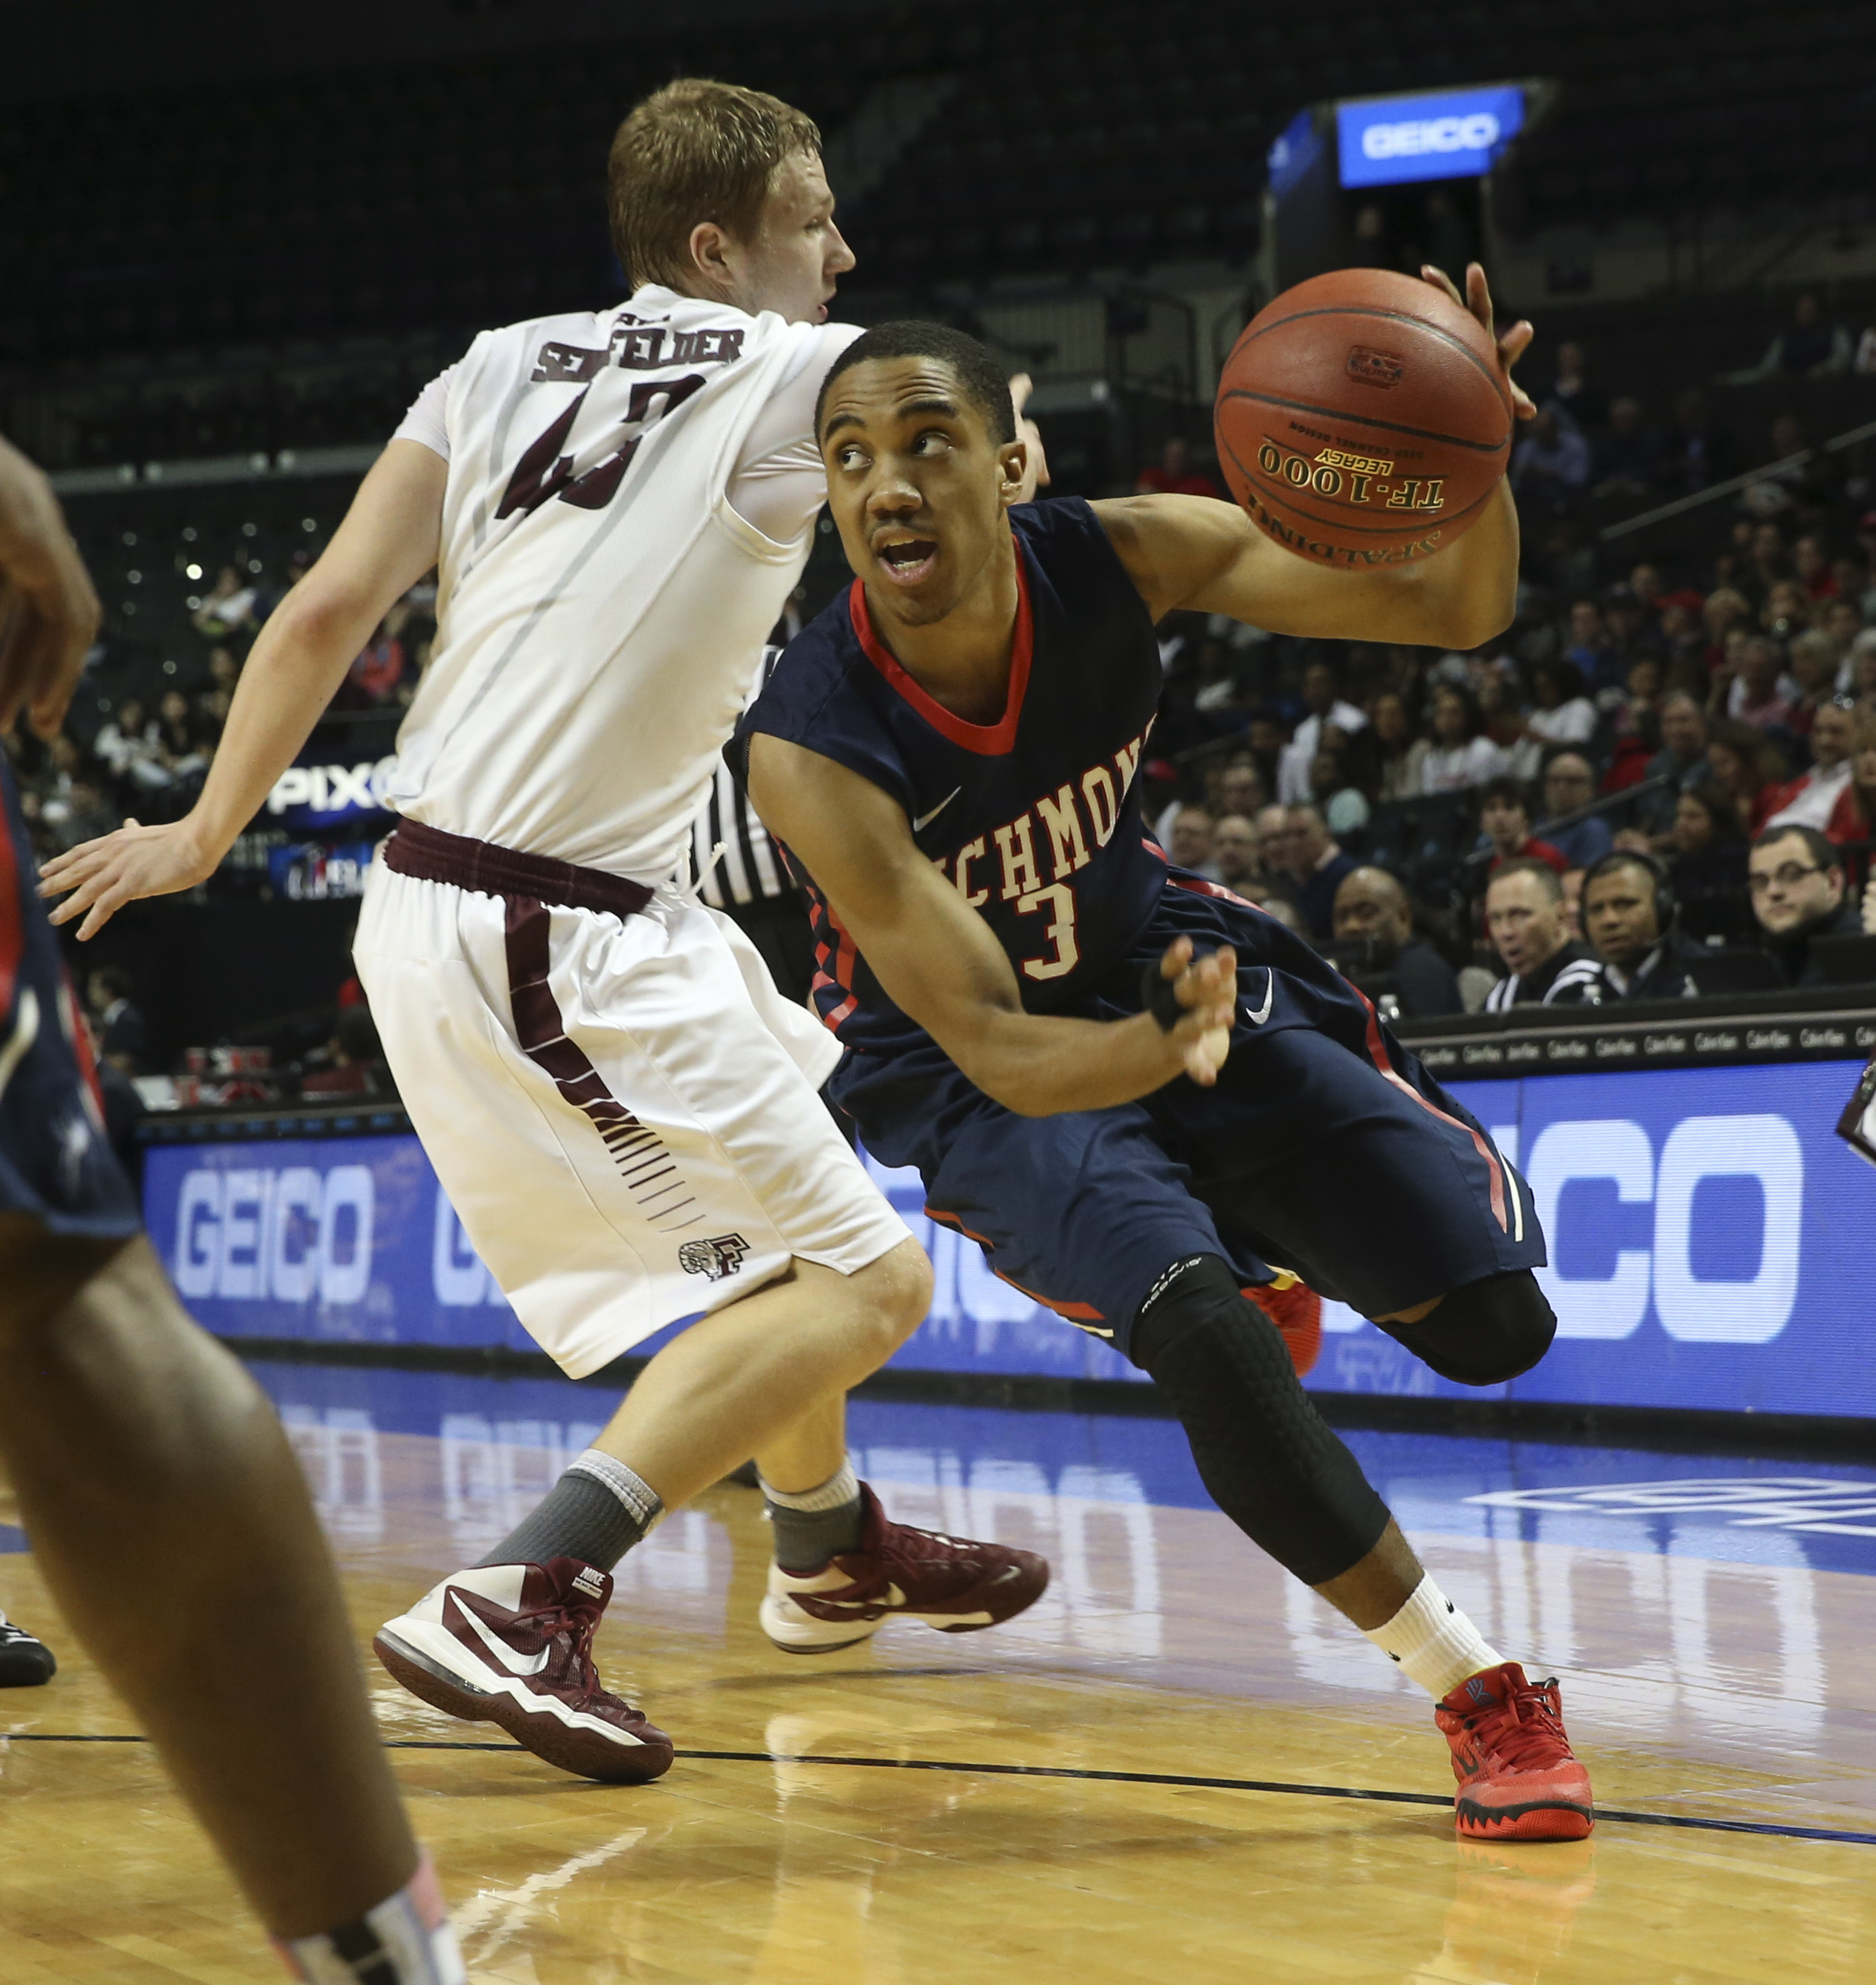 Richmond guard ShawnDre' Jones (3) drives to the basket past Fordham forward Christian Sengfelder (43) during the first half of an NCAA college basketball game in the Atlantic 10 men's tournament, Thursday, March 10, 2016, at New York. (AP Photo/Mary Alta